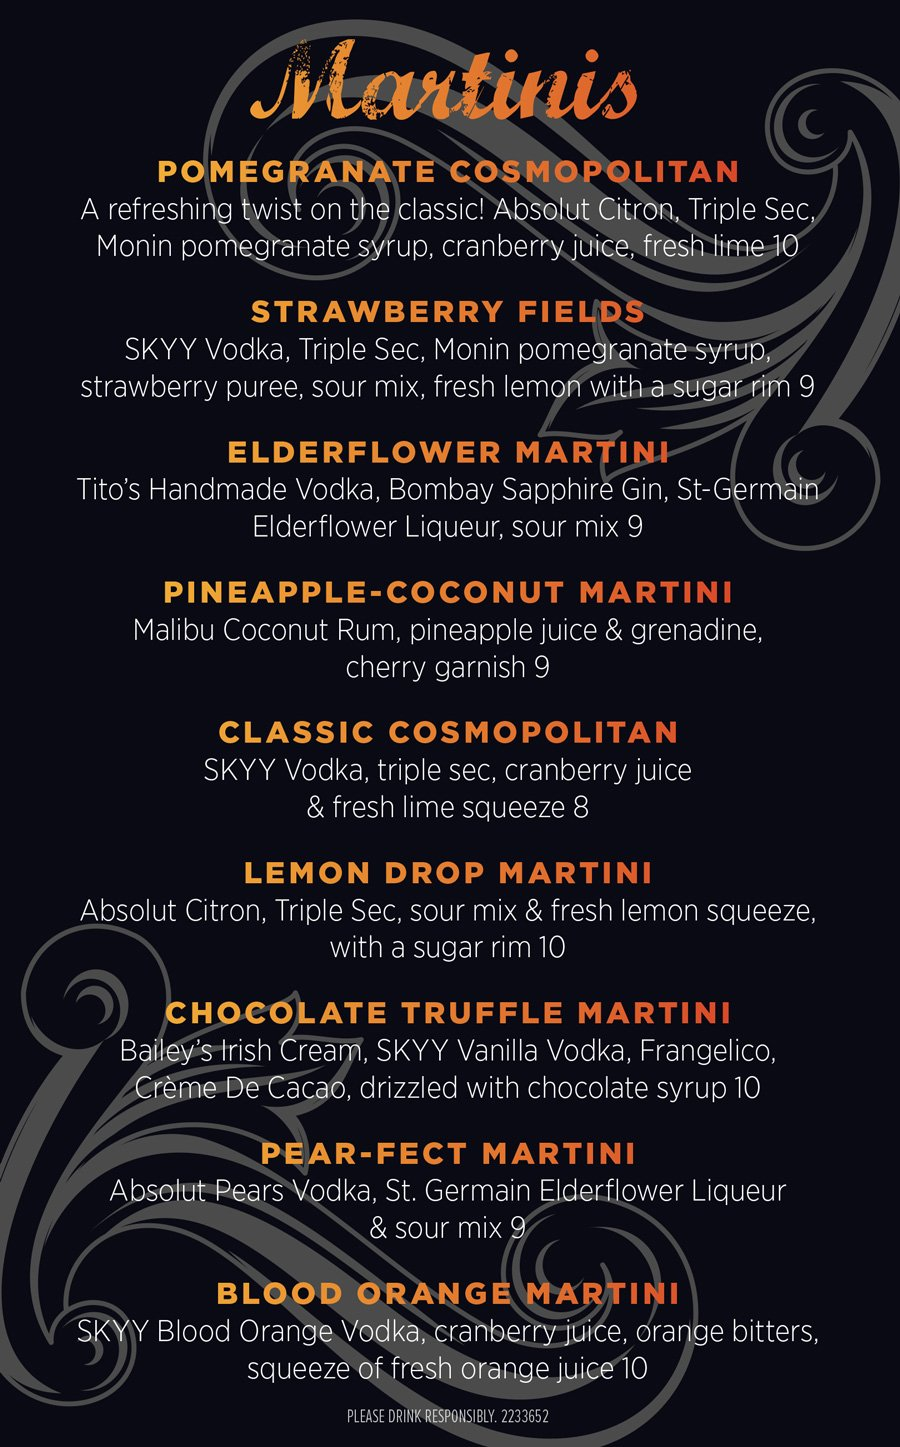 Martini Menu at The Distillery Restaurant